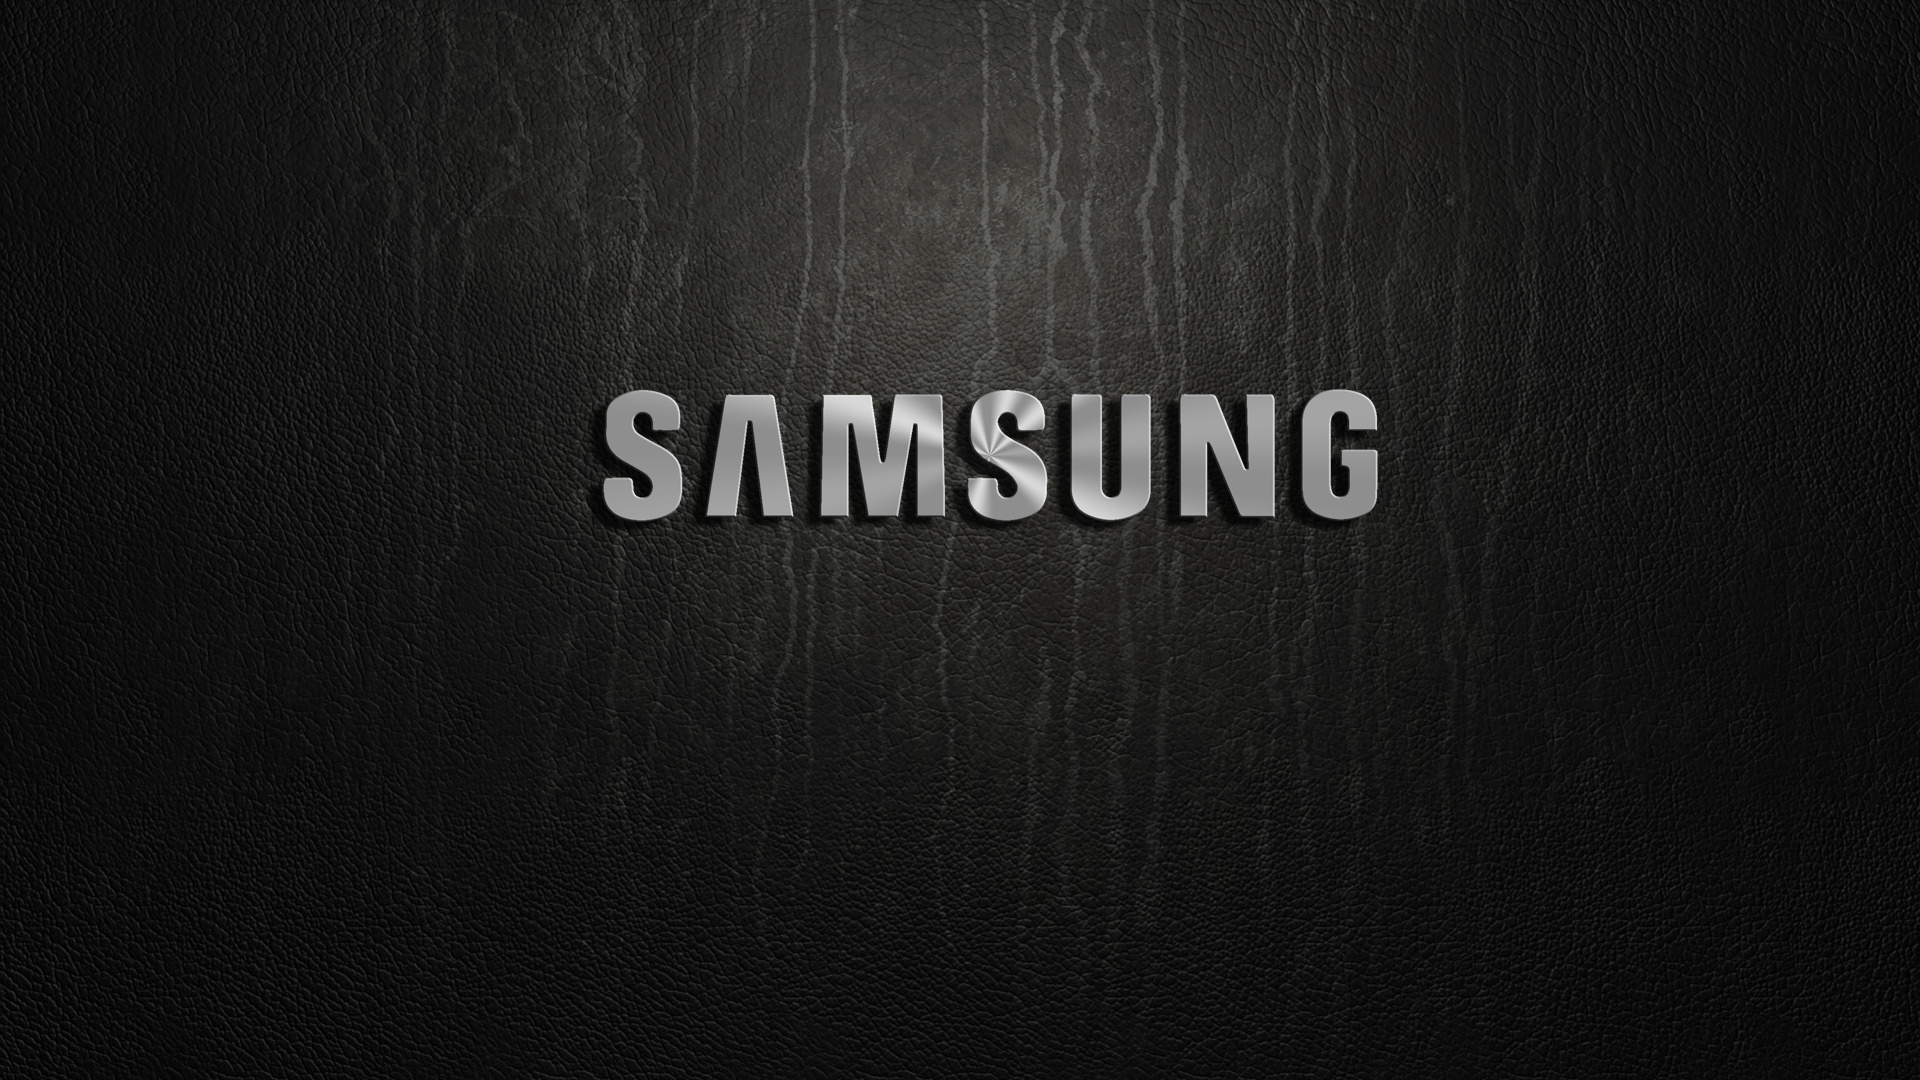 Samsung Ultra 4K Wallpapers